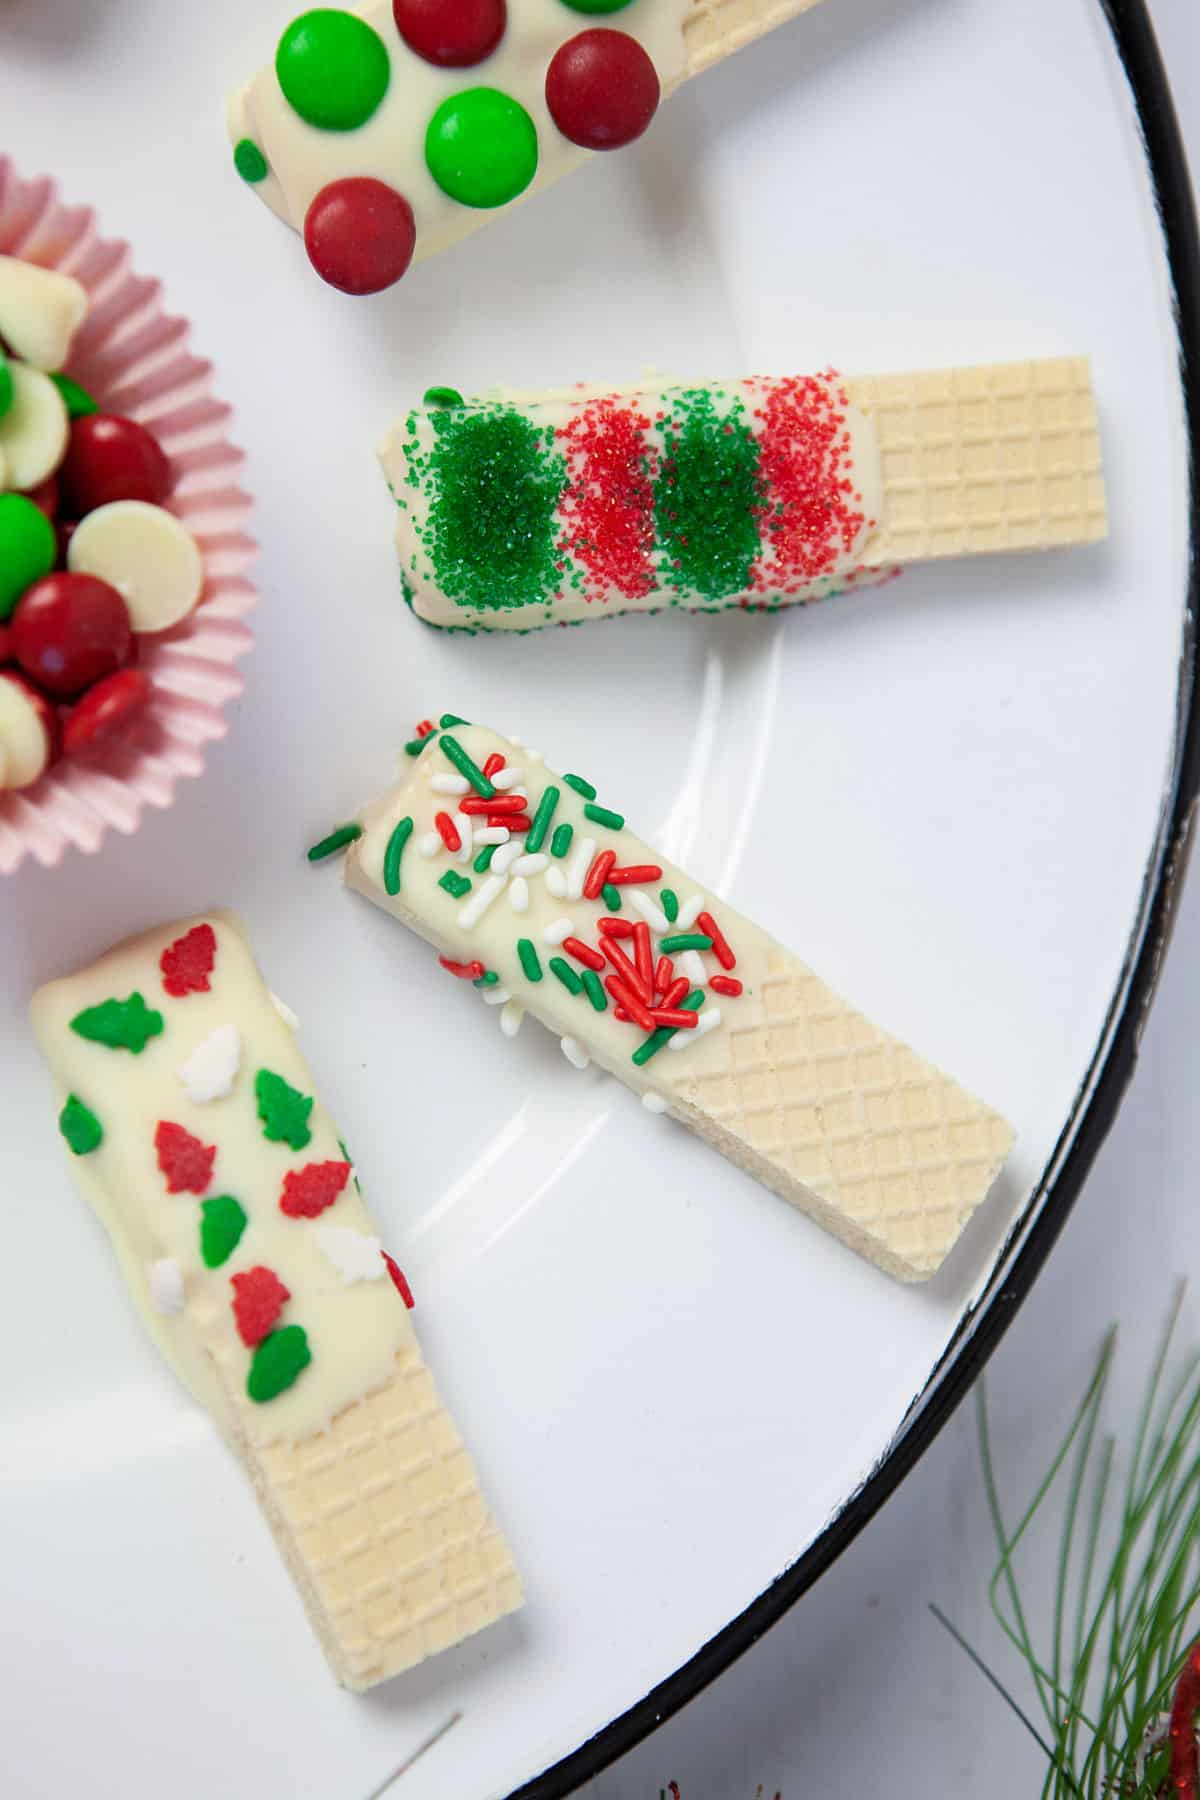 a plate of decorated sugar wafer cookies